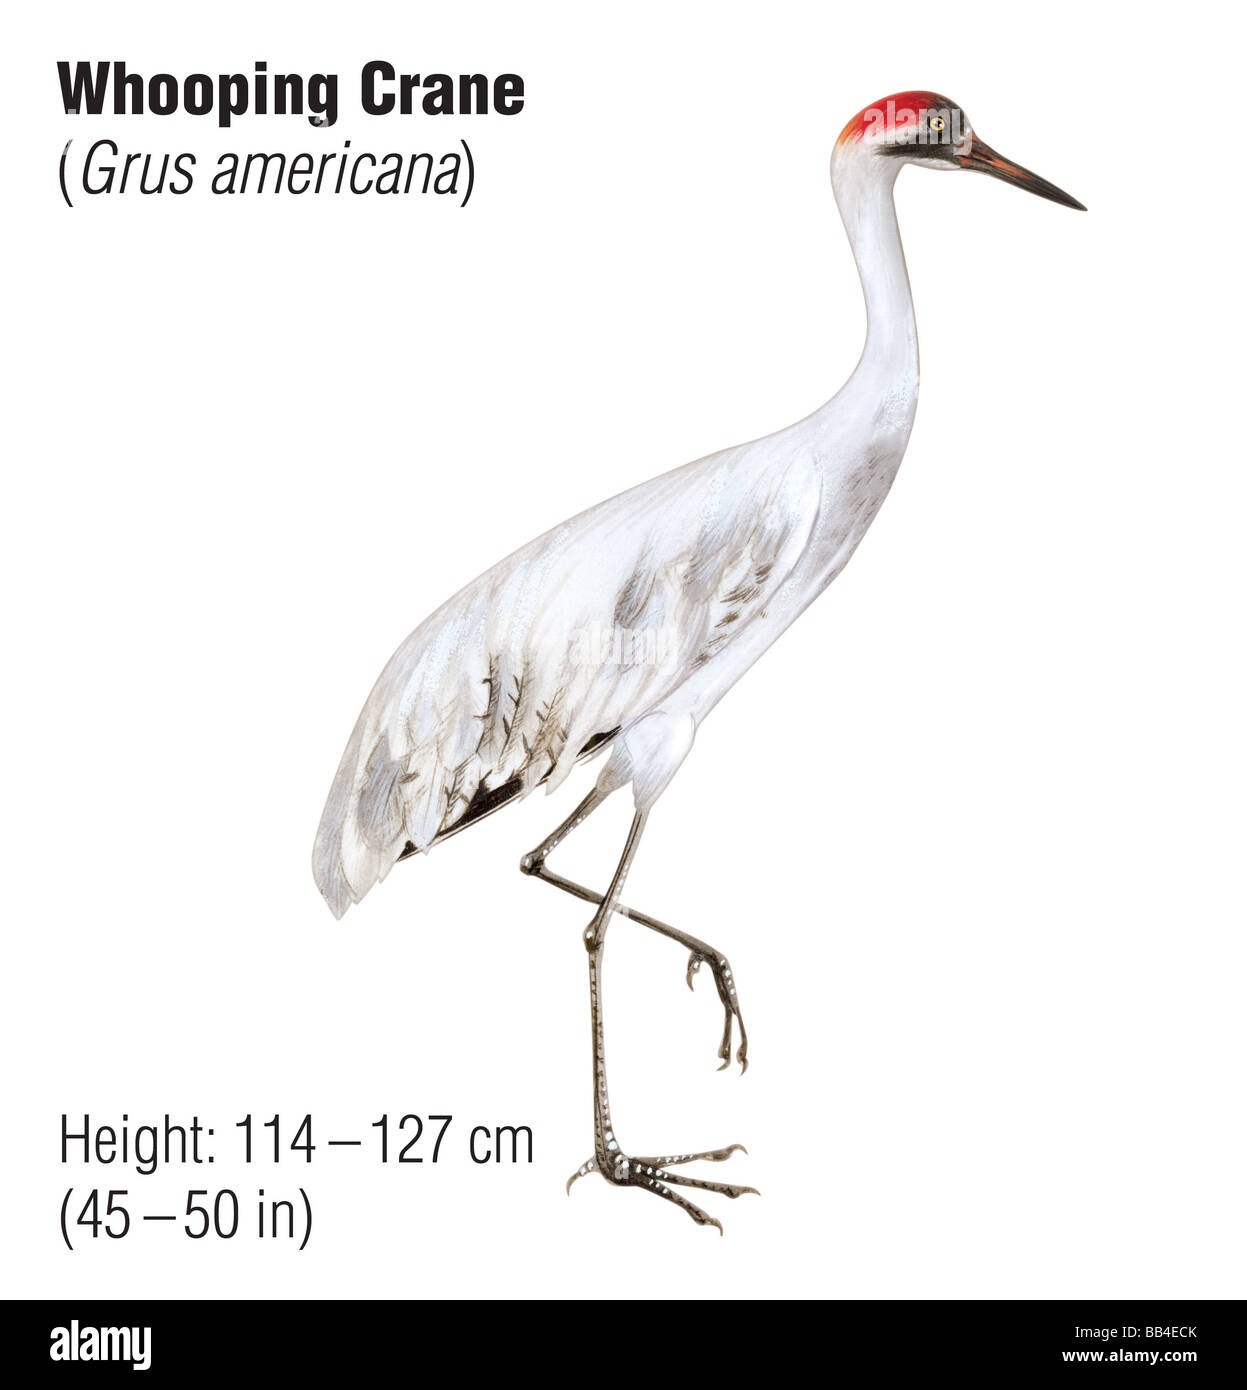 Whooping crane (Grus americana), an endangered species - Stock Image